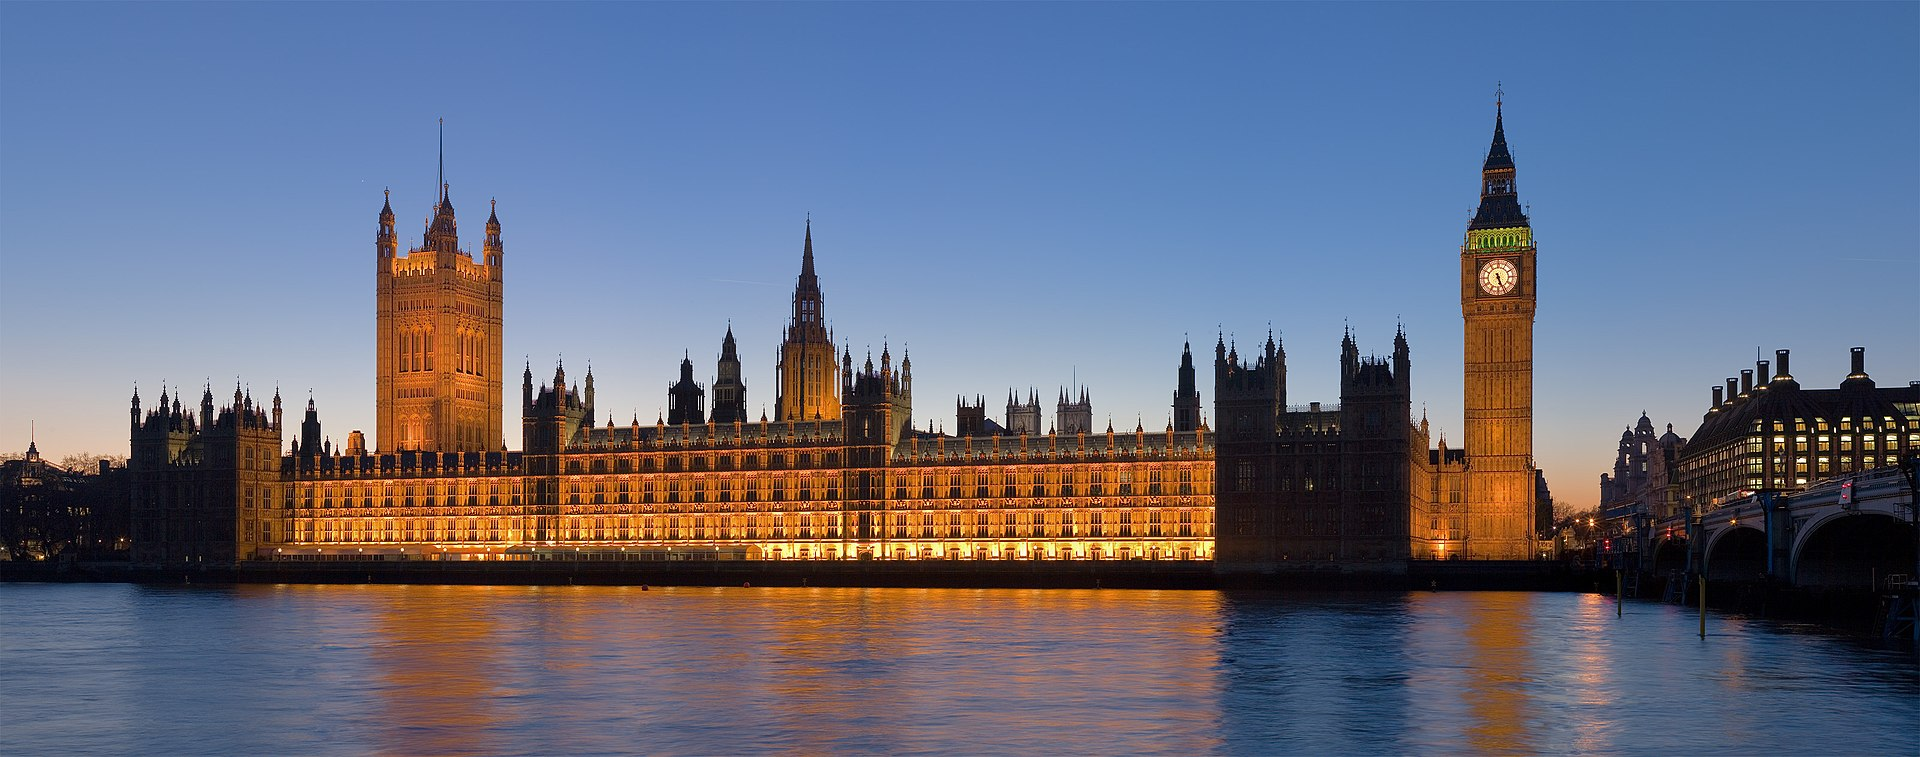 1920px-Palace_of_Westminster,_London_-_Feb_2007.jpg